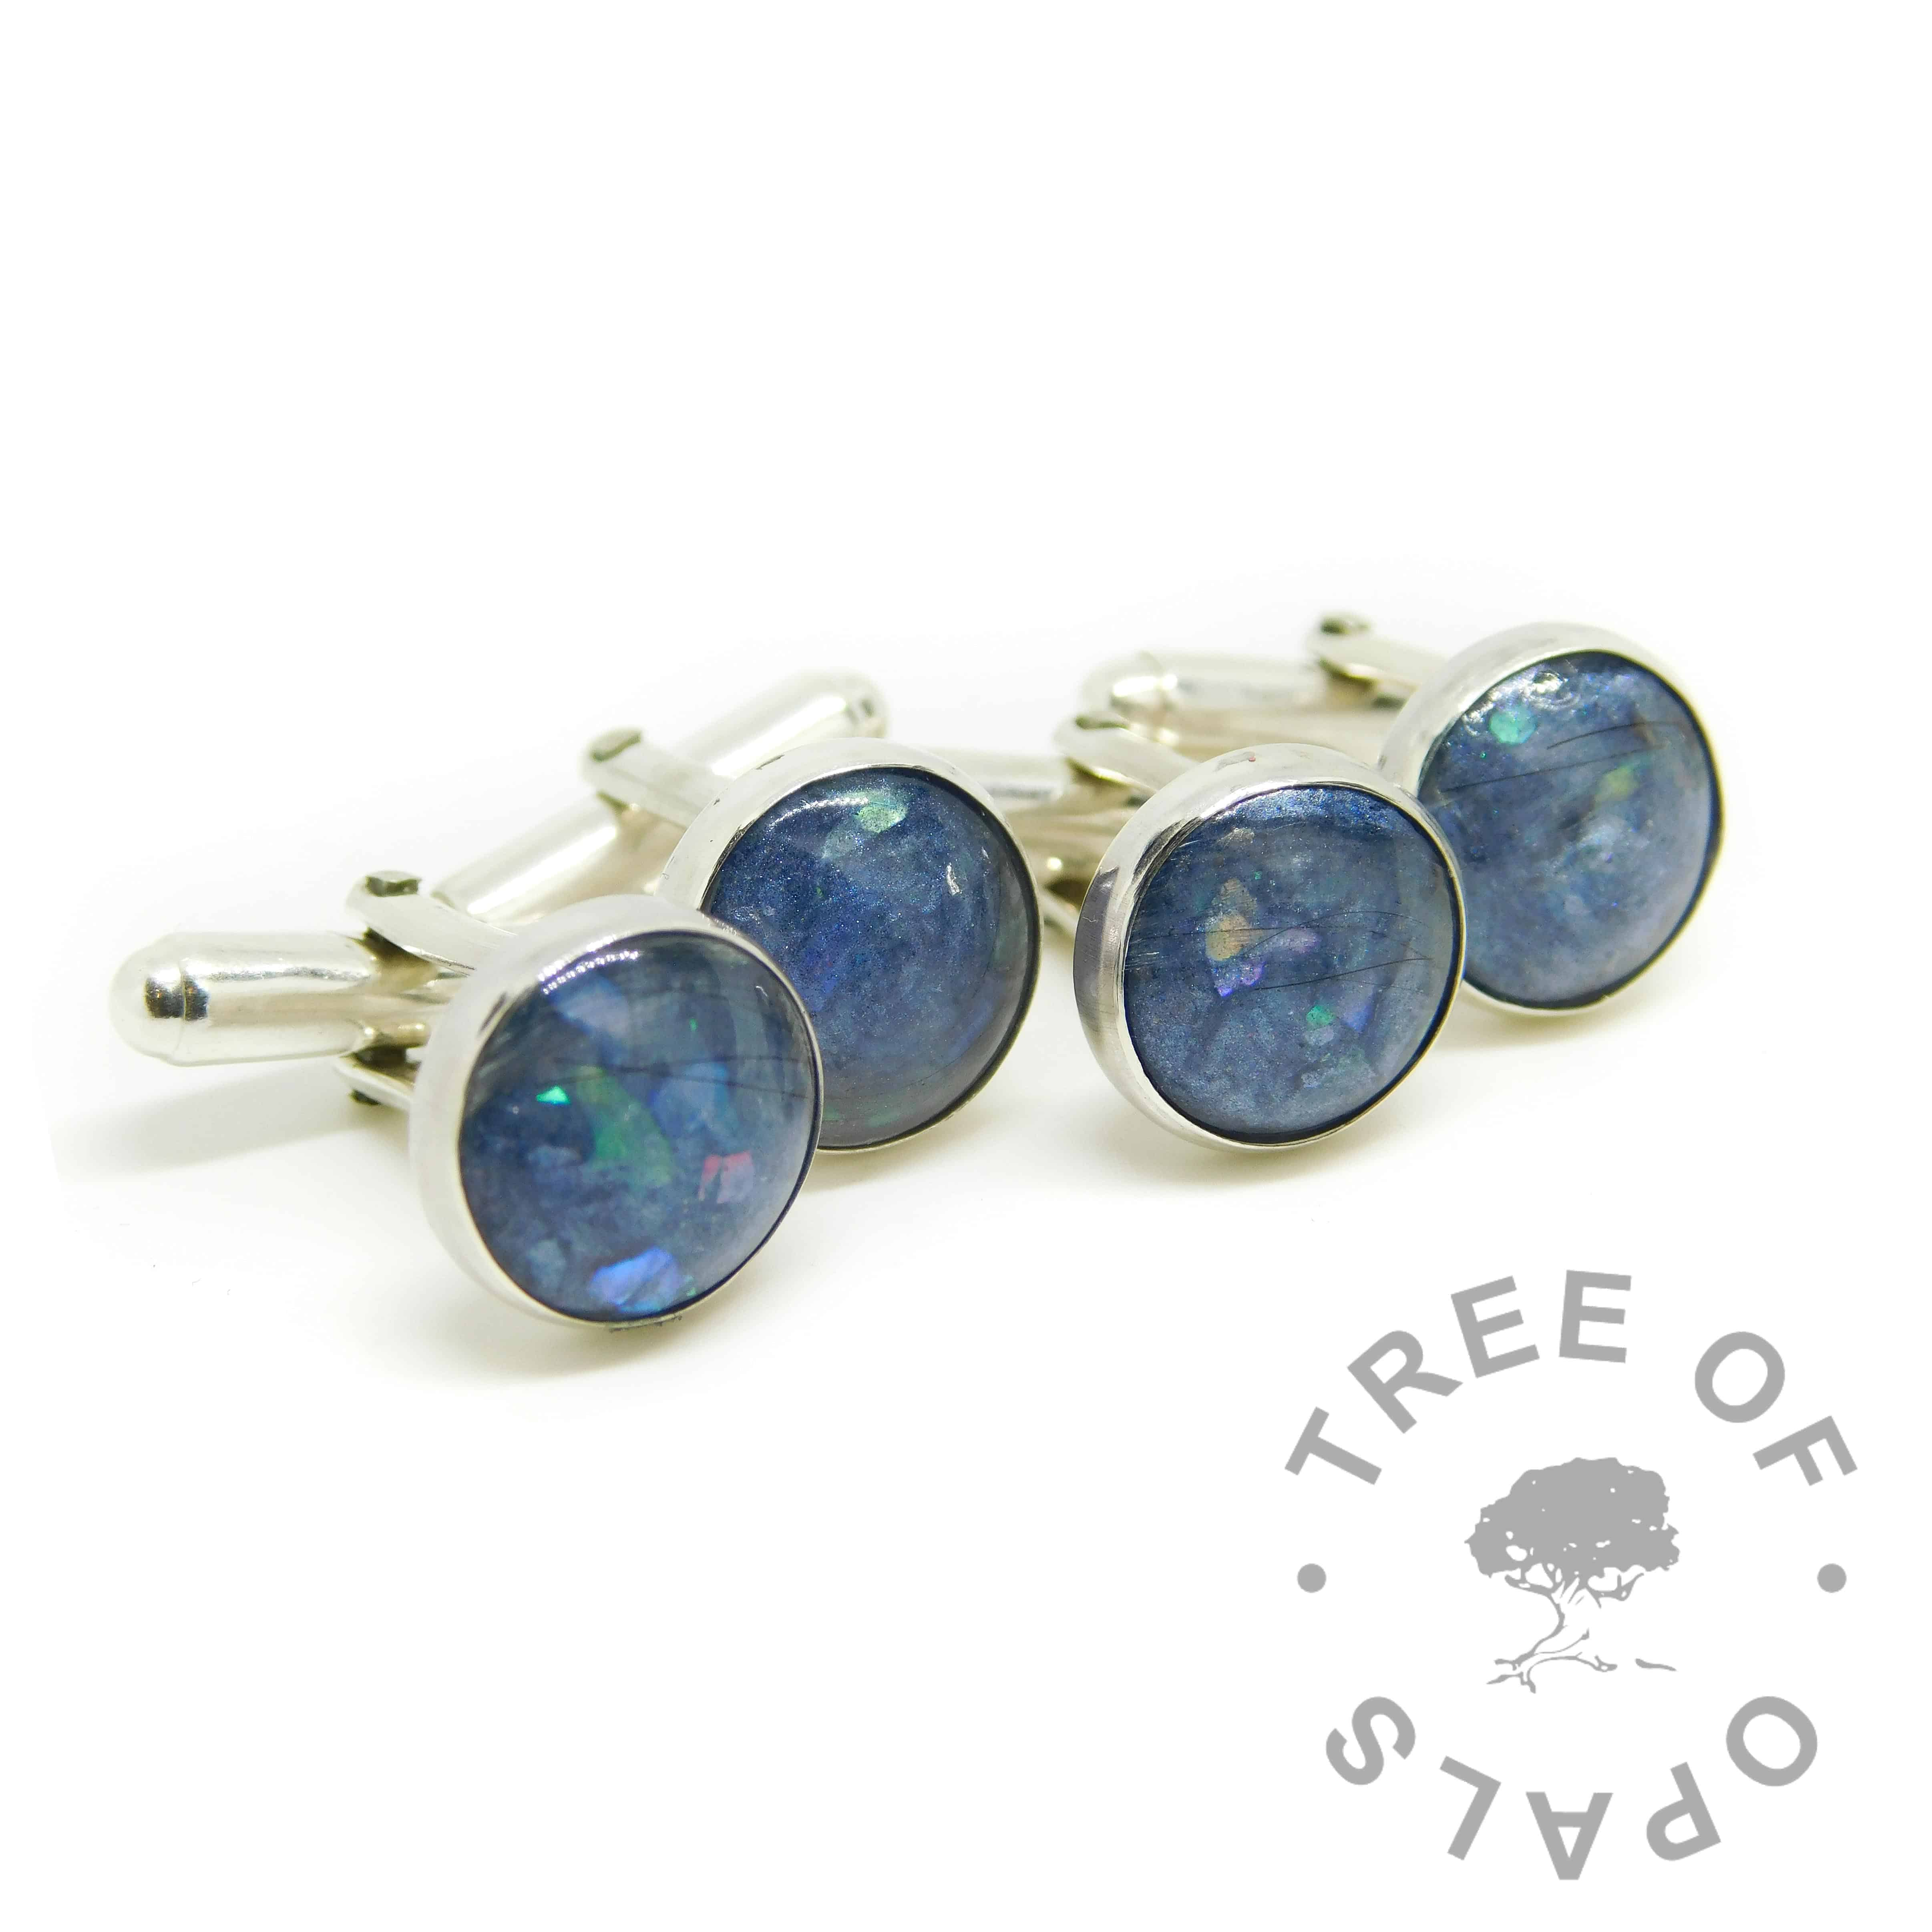 lock of hair cufflinks with Aegean Blue Resin Sparkle Mix, white/clear see-through hair, two pairs